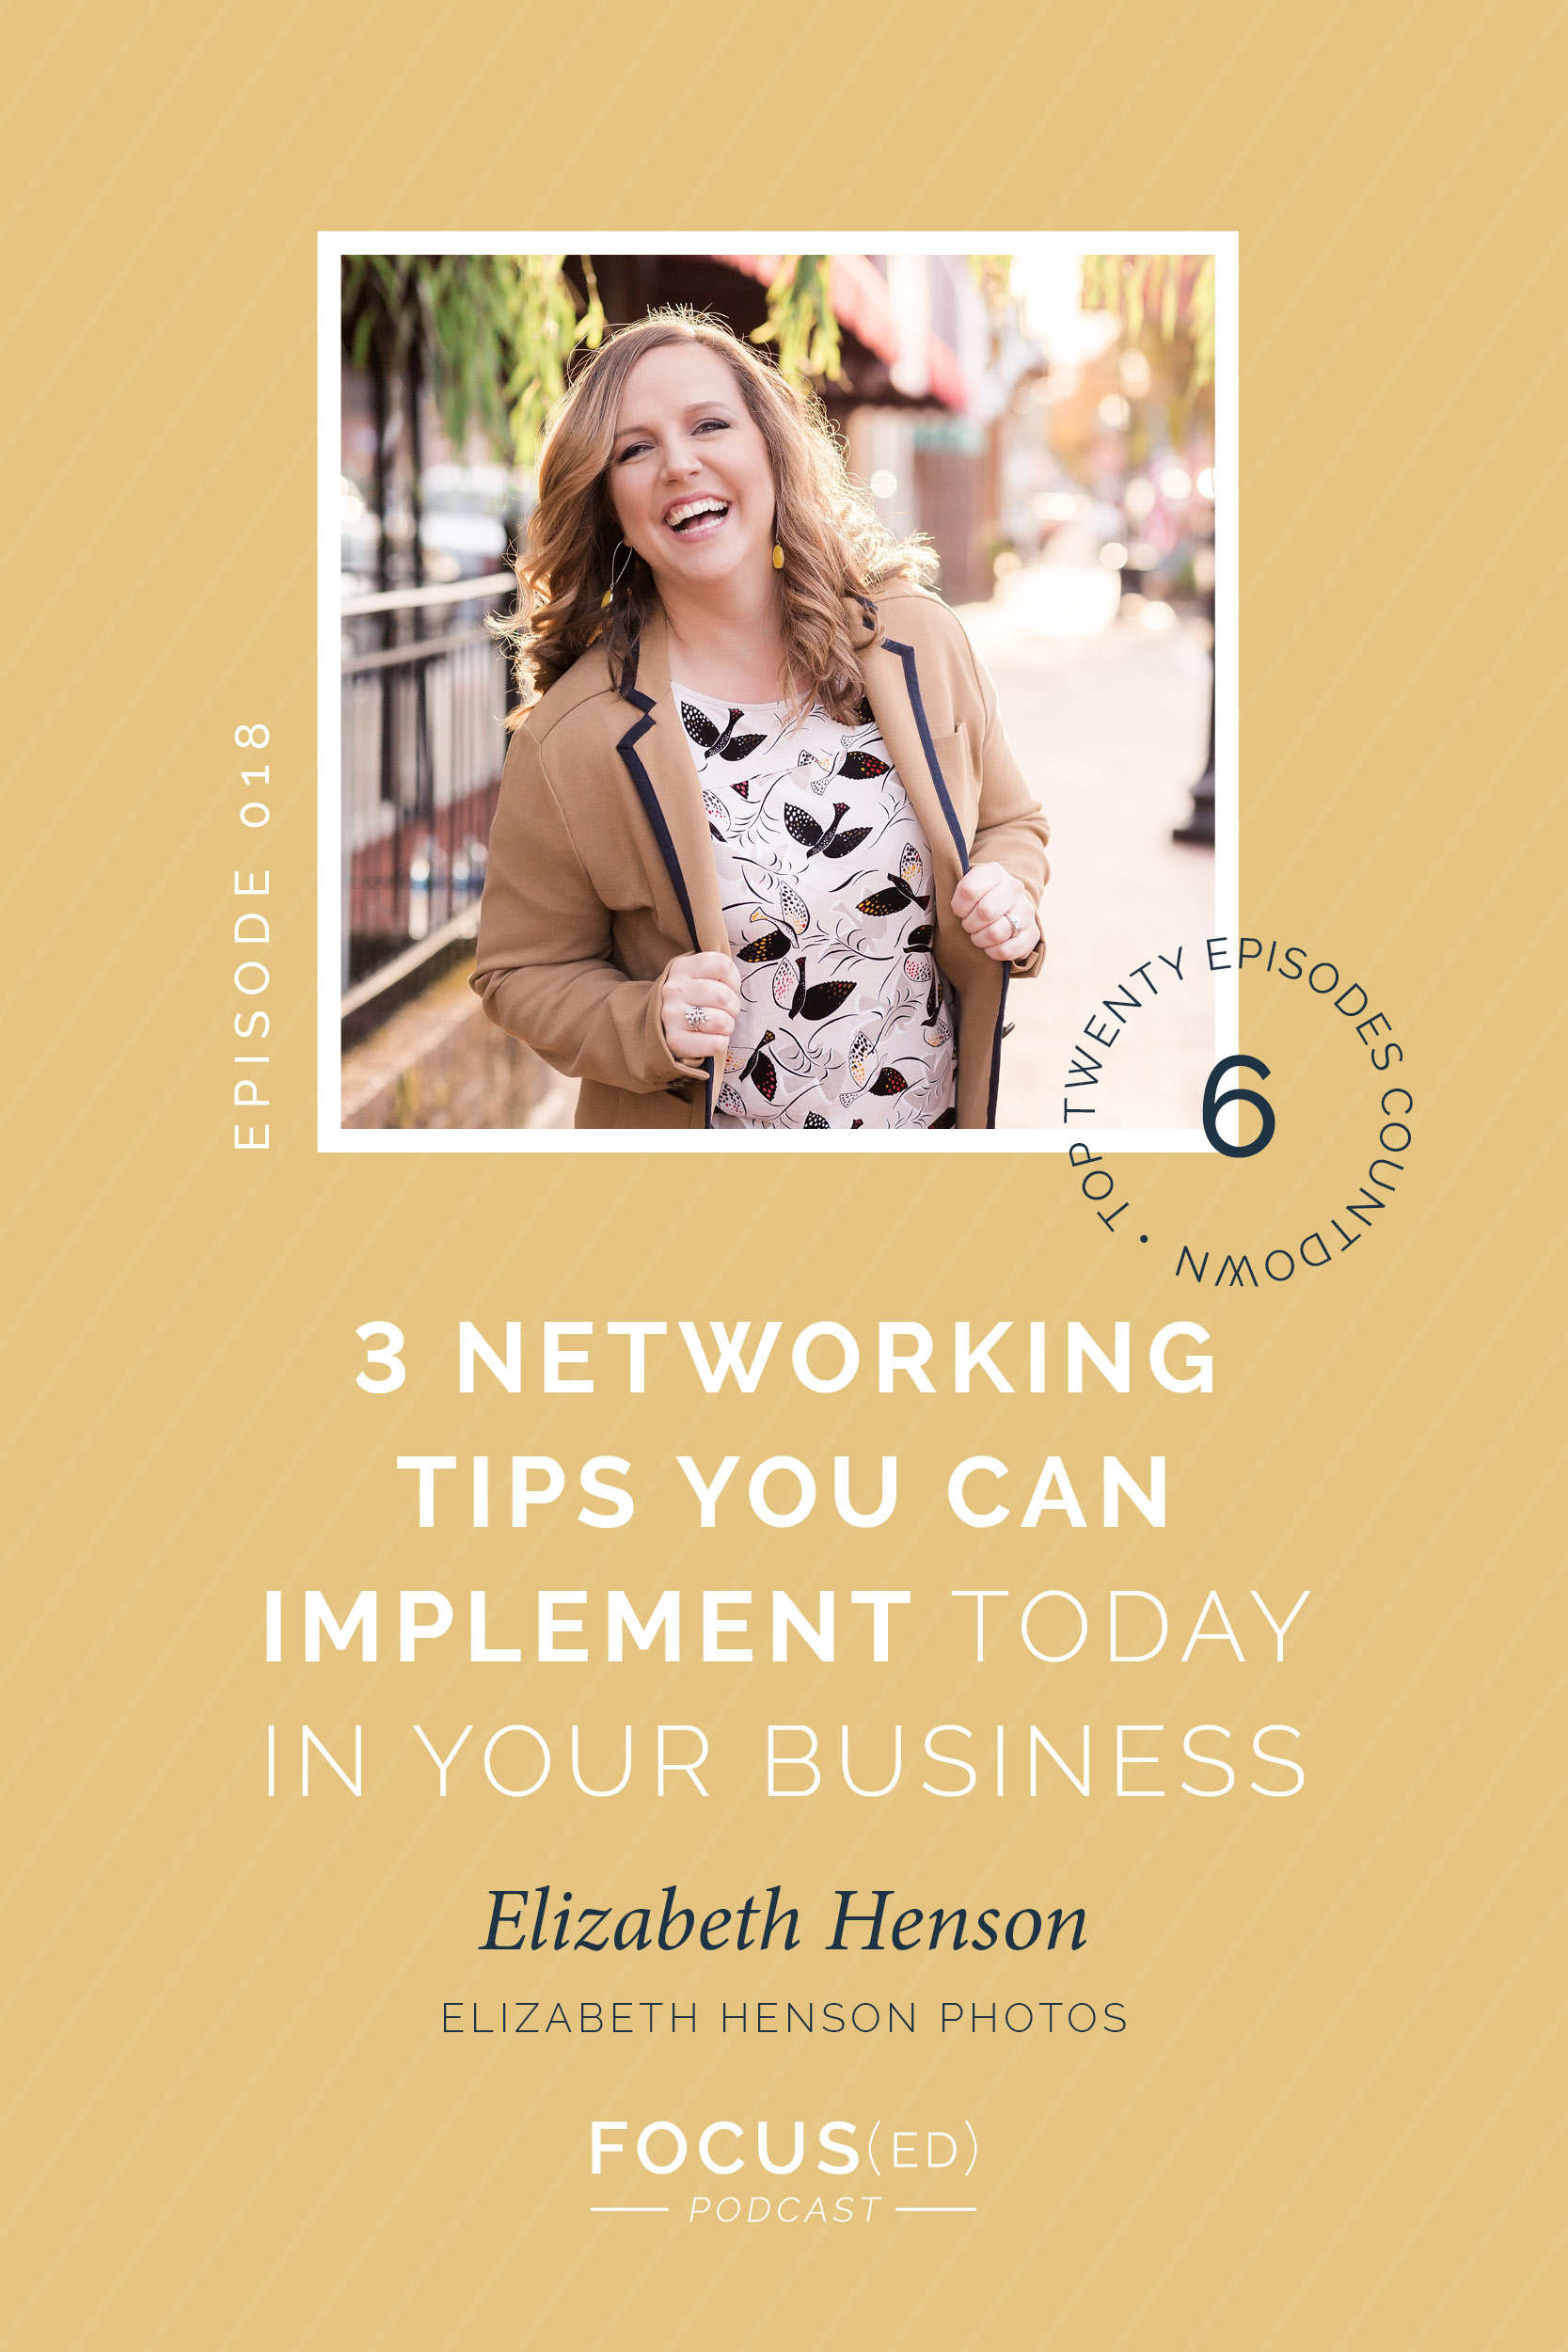 3 networking tips you can implement today in your business